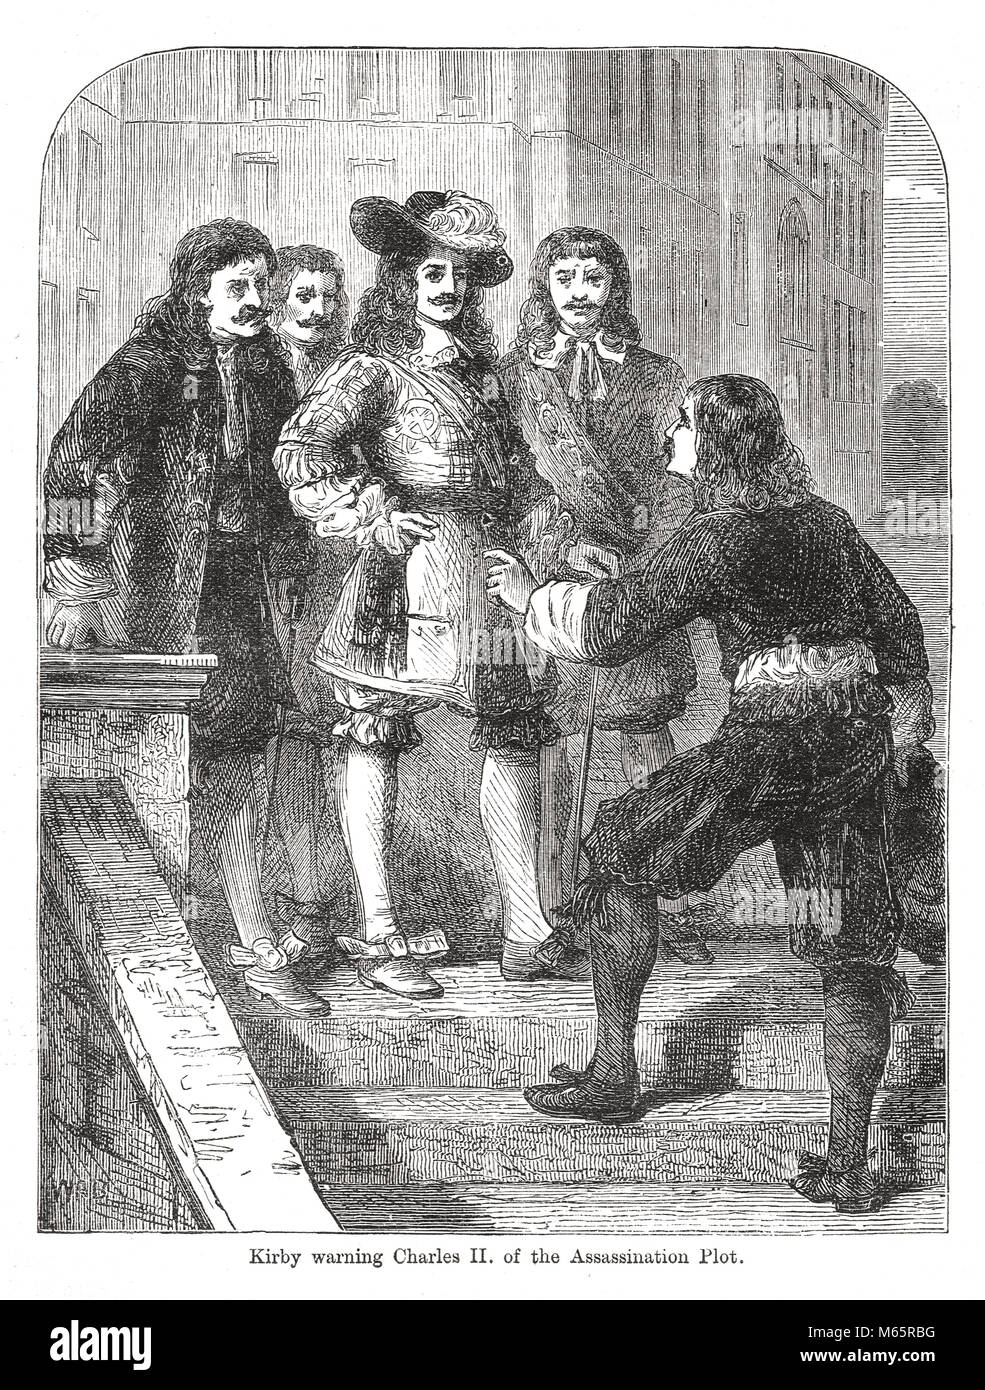 Christopher Kirkby (or Kirby), warning Charles II of the assassination plot, the Popish plot, 1678 - Stock Image